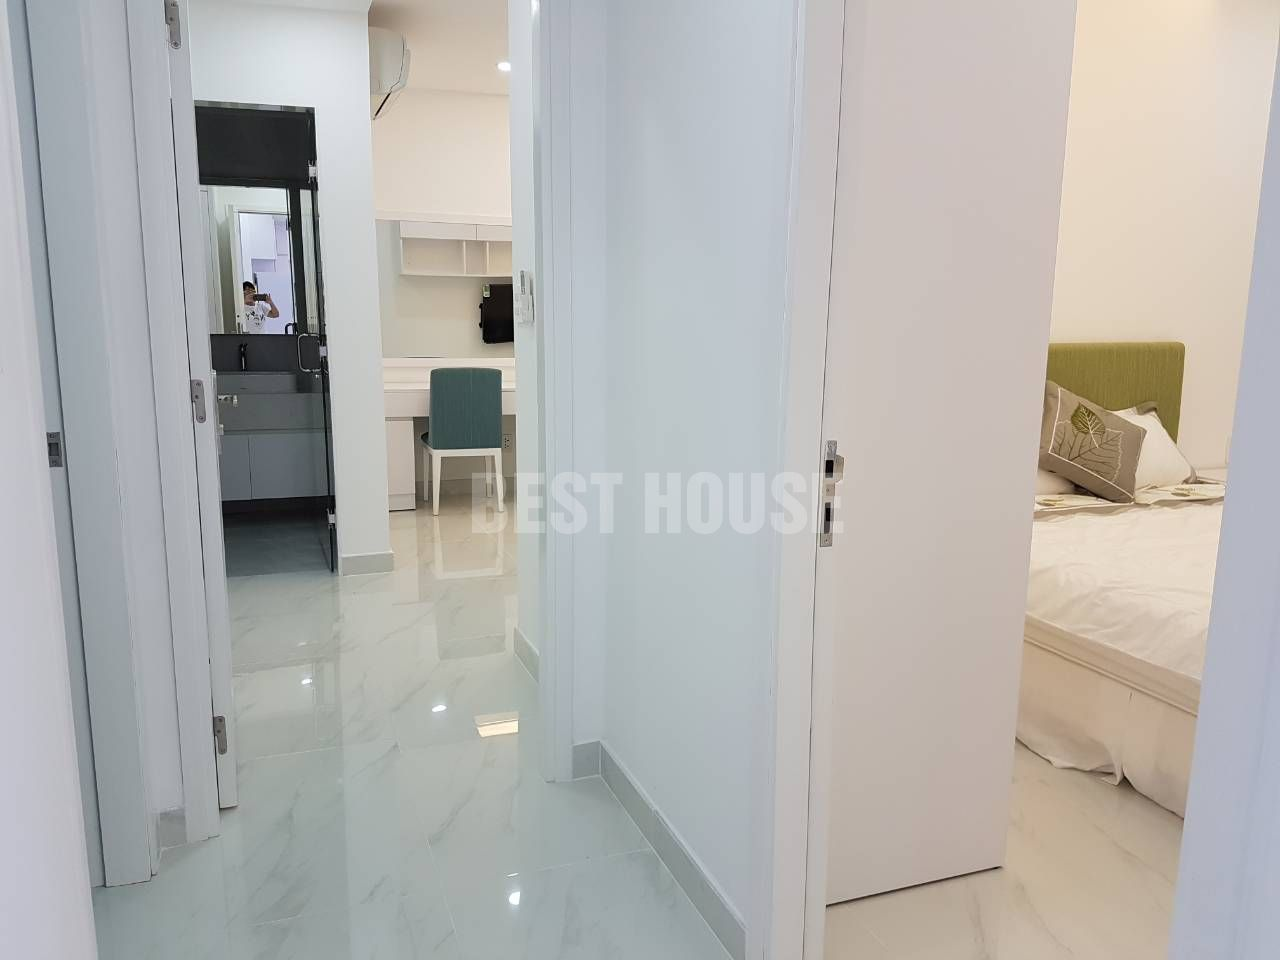 apartment-for-rent-in-green-valley-phu-my-hung-district-7-hcmc-1